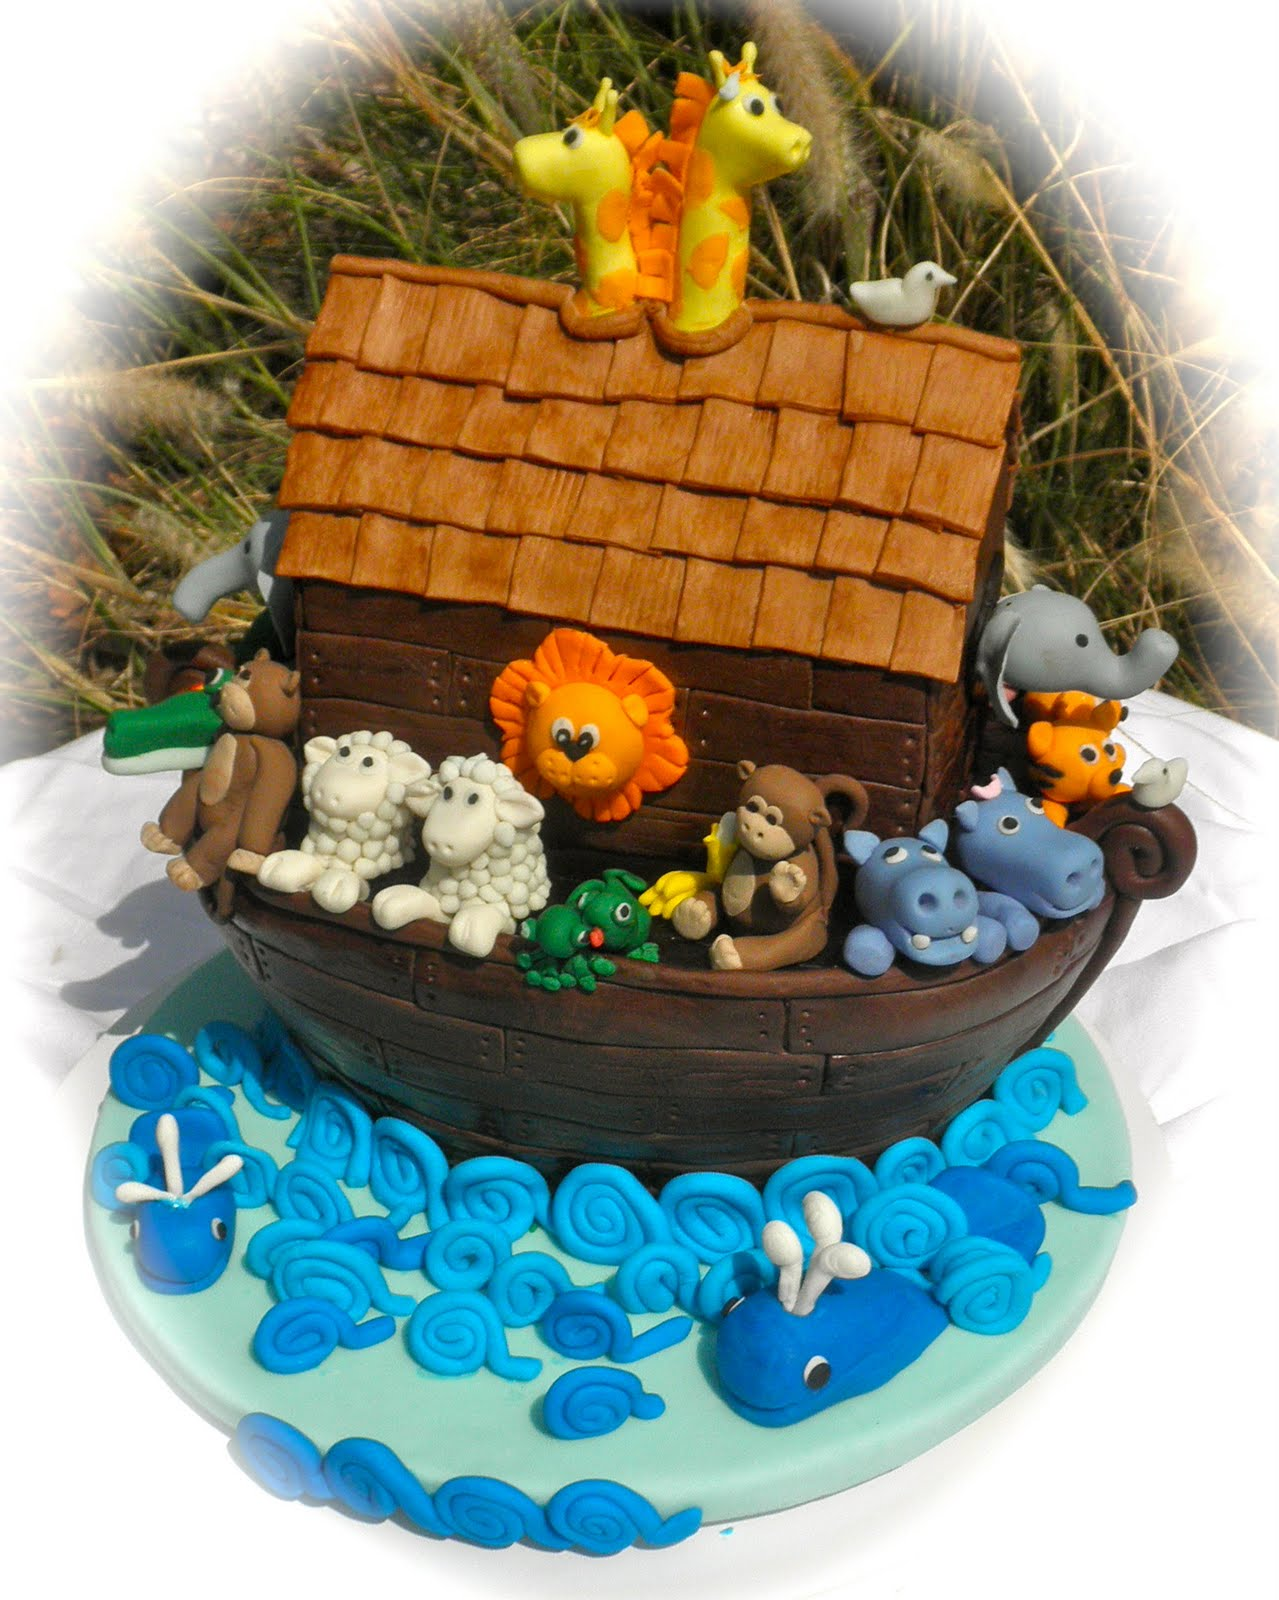 sweet t 39 s cake design noah 39 s ark baby shower cake